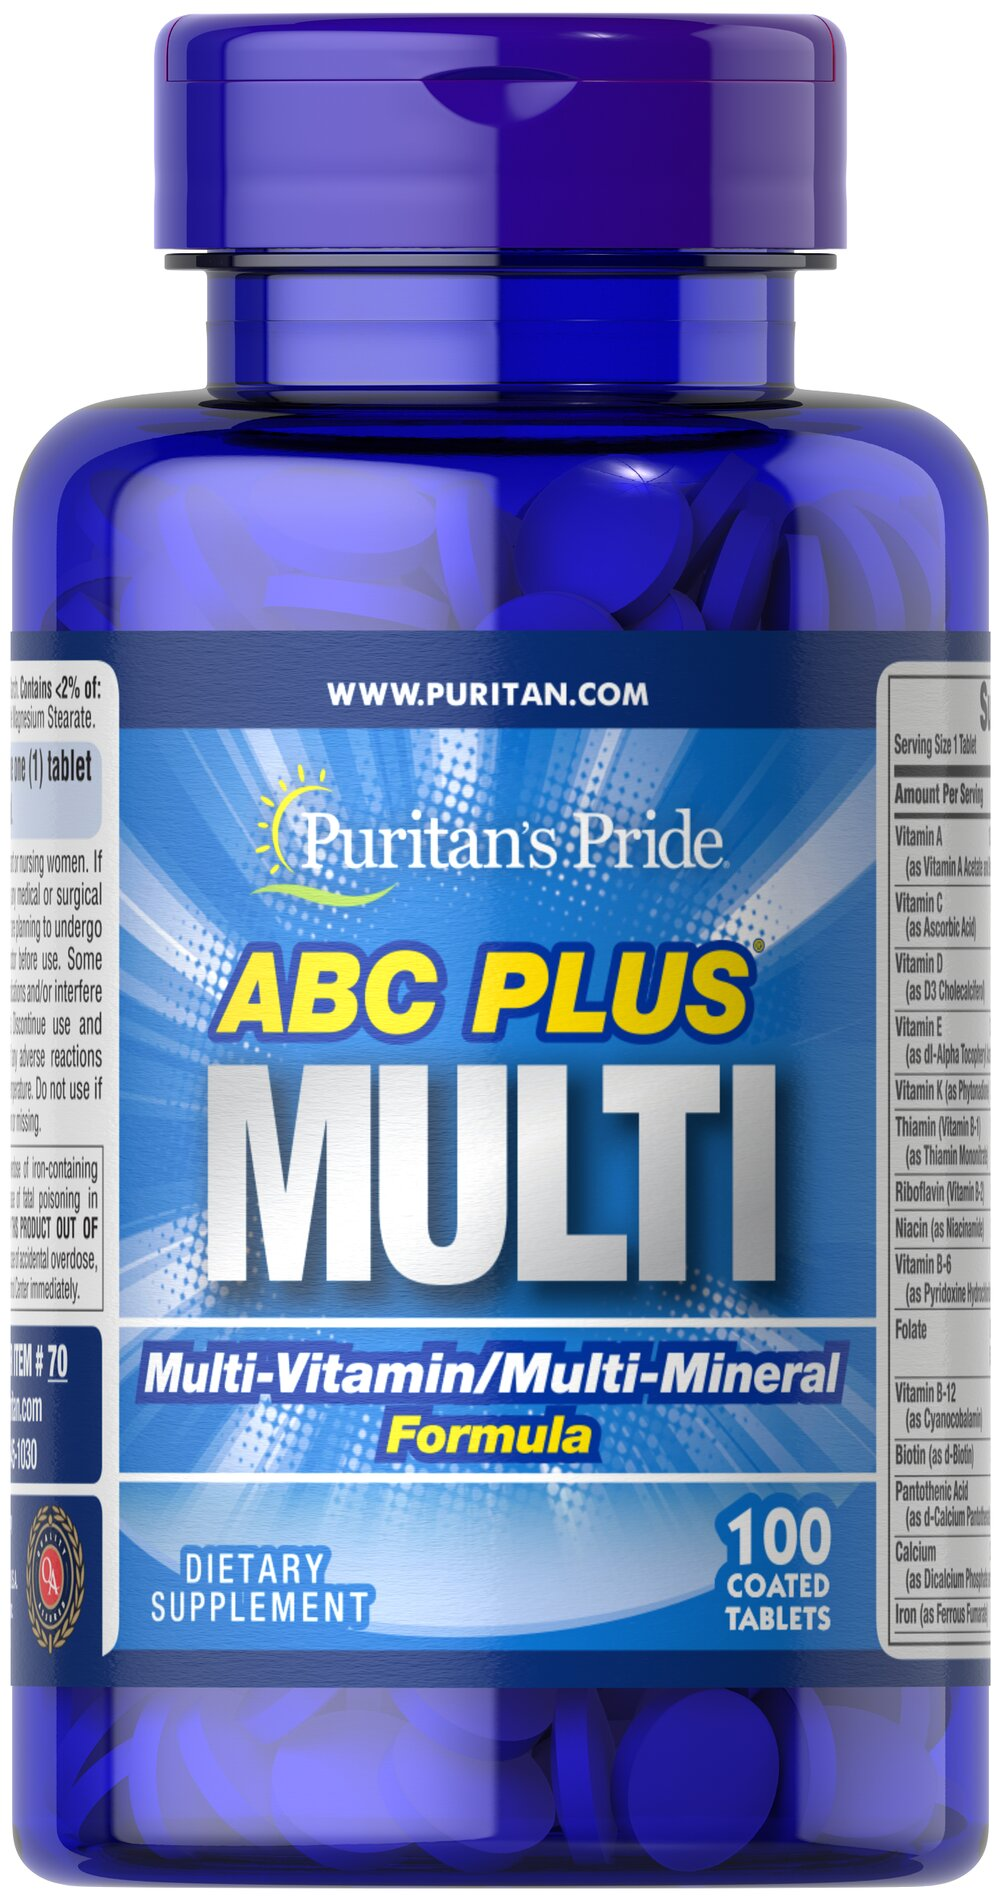 ABC Plus Multivitamin and Multi-Mineral Formula <p>Now getting your daily nutrients is as easy as ABC Plus! This dynamic formula offers a full spectrum of vitamins and minerals for your healthy lifestyle.</p> 100 Caplets  $12.99